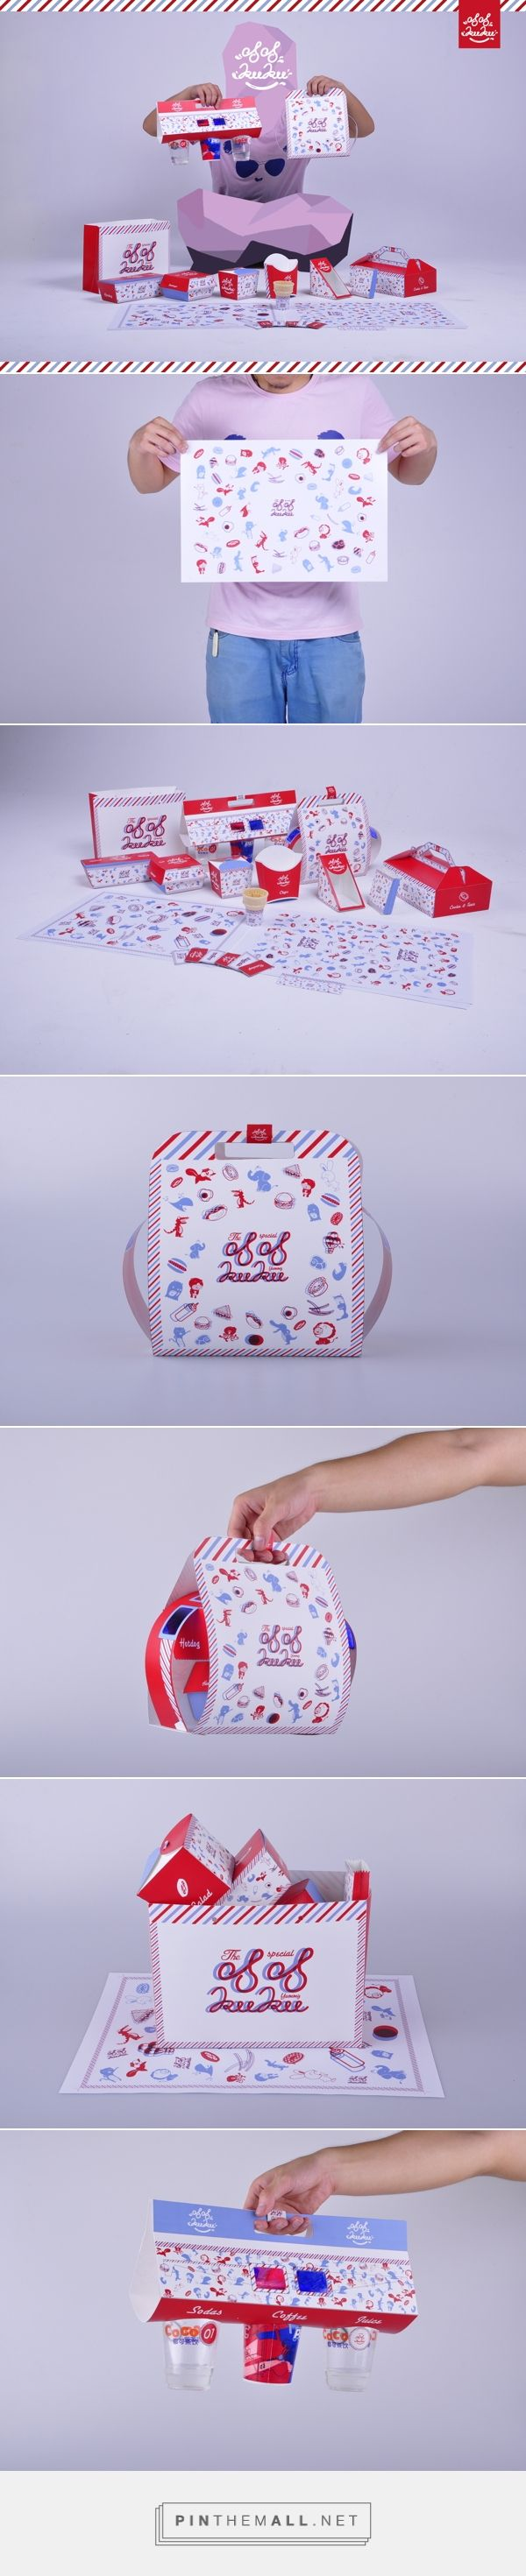 KuKu Fastfood Packaging by Boyang Xu on Behance curated by Packaging Diva PD. Concept of looking at packaging through colored glasses.